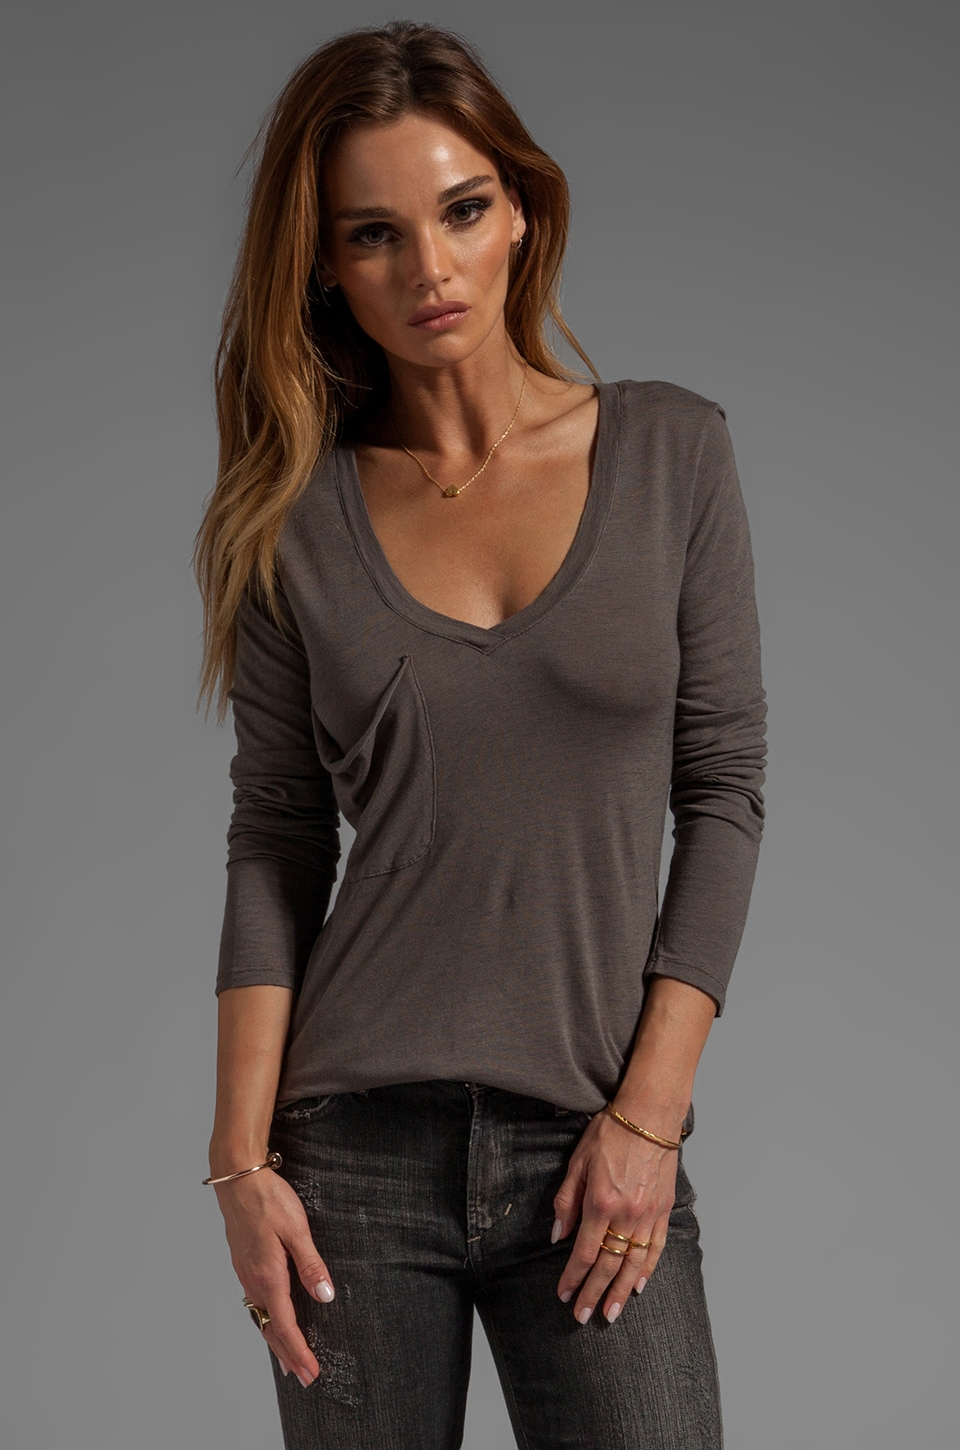 Bobi Slub Long Sleeve Pocket Tee in Mountain